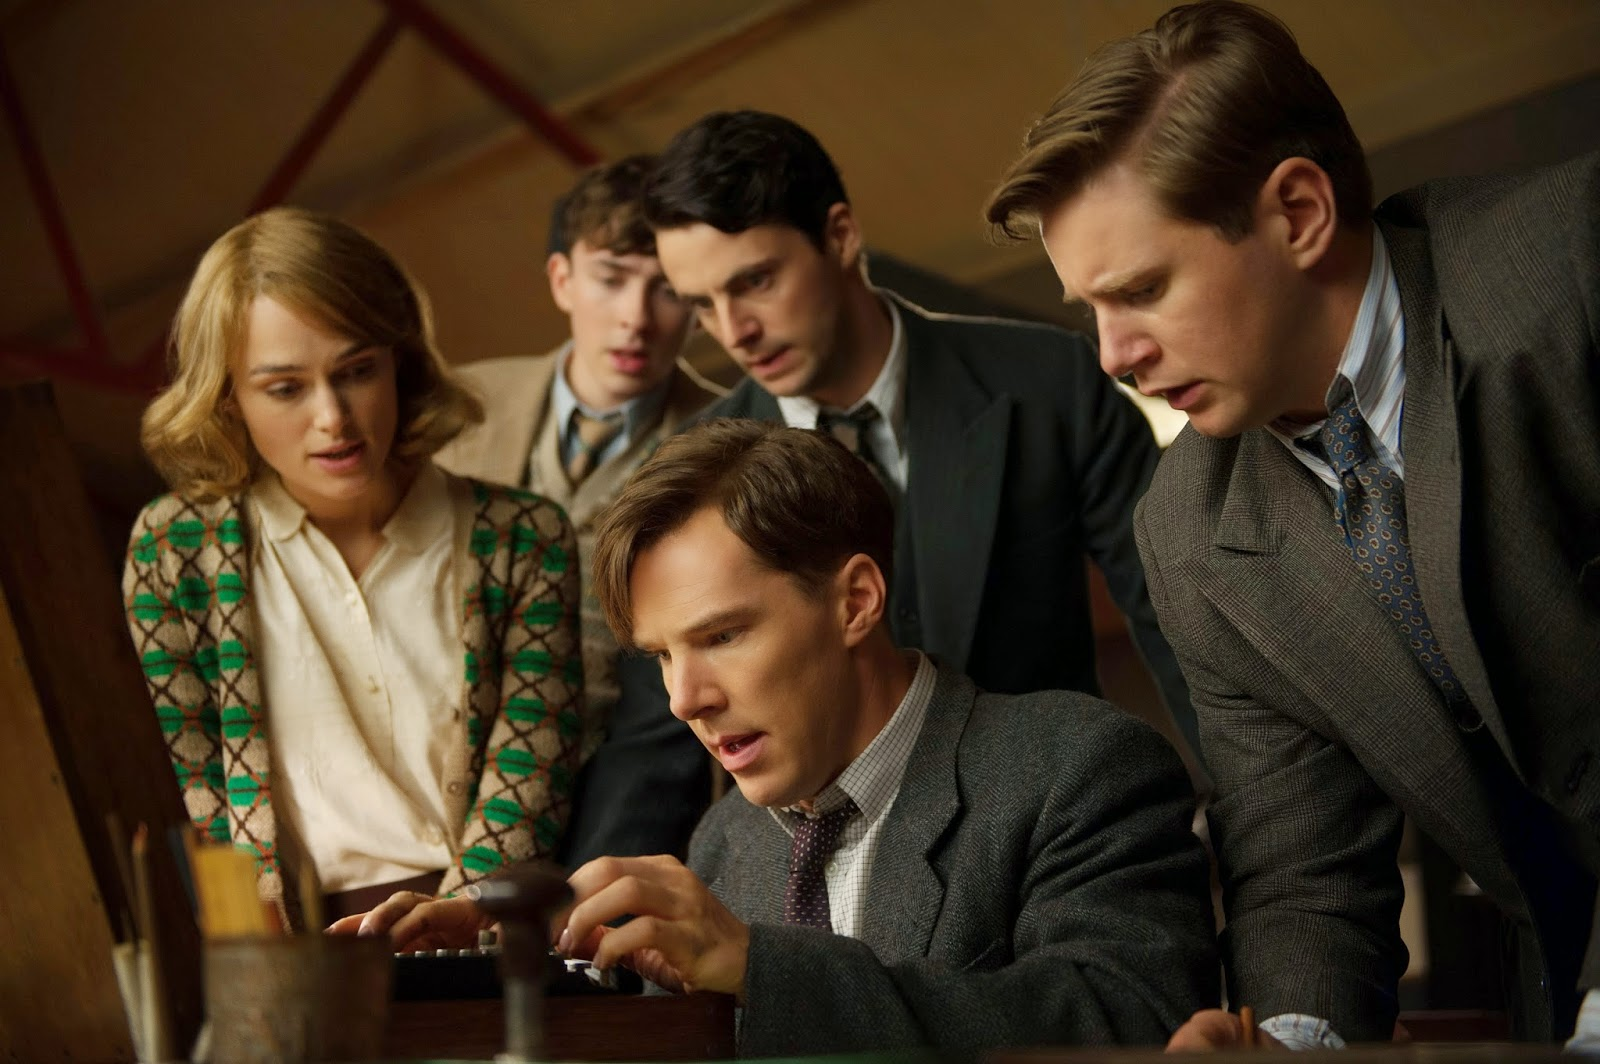 """The Imitation Game"" sarà il film che apre Capri-Hollywood 2014"